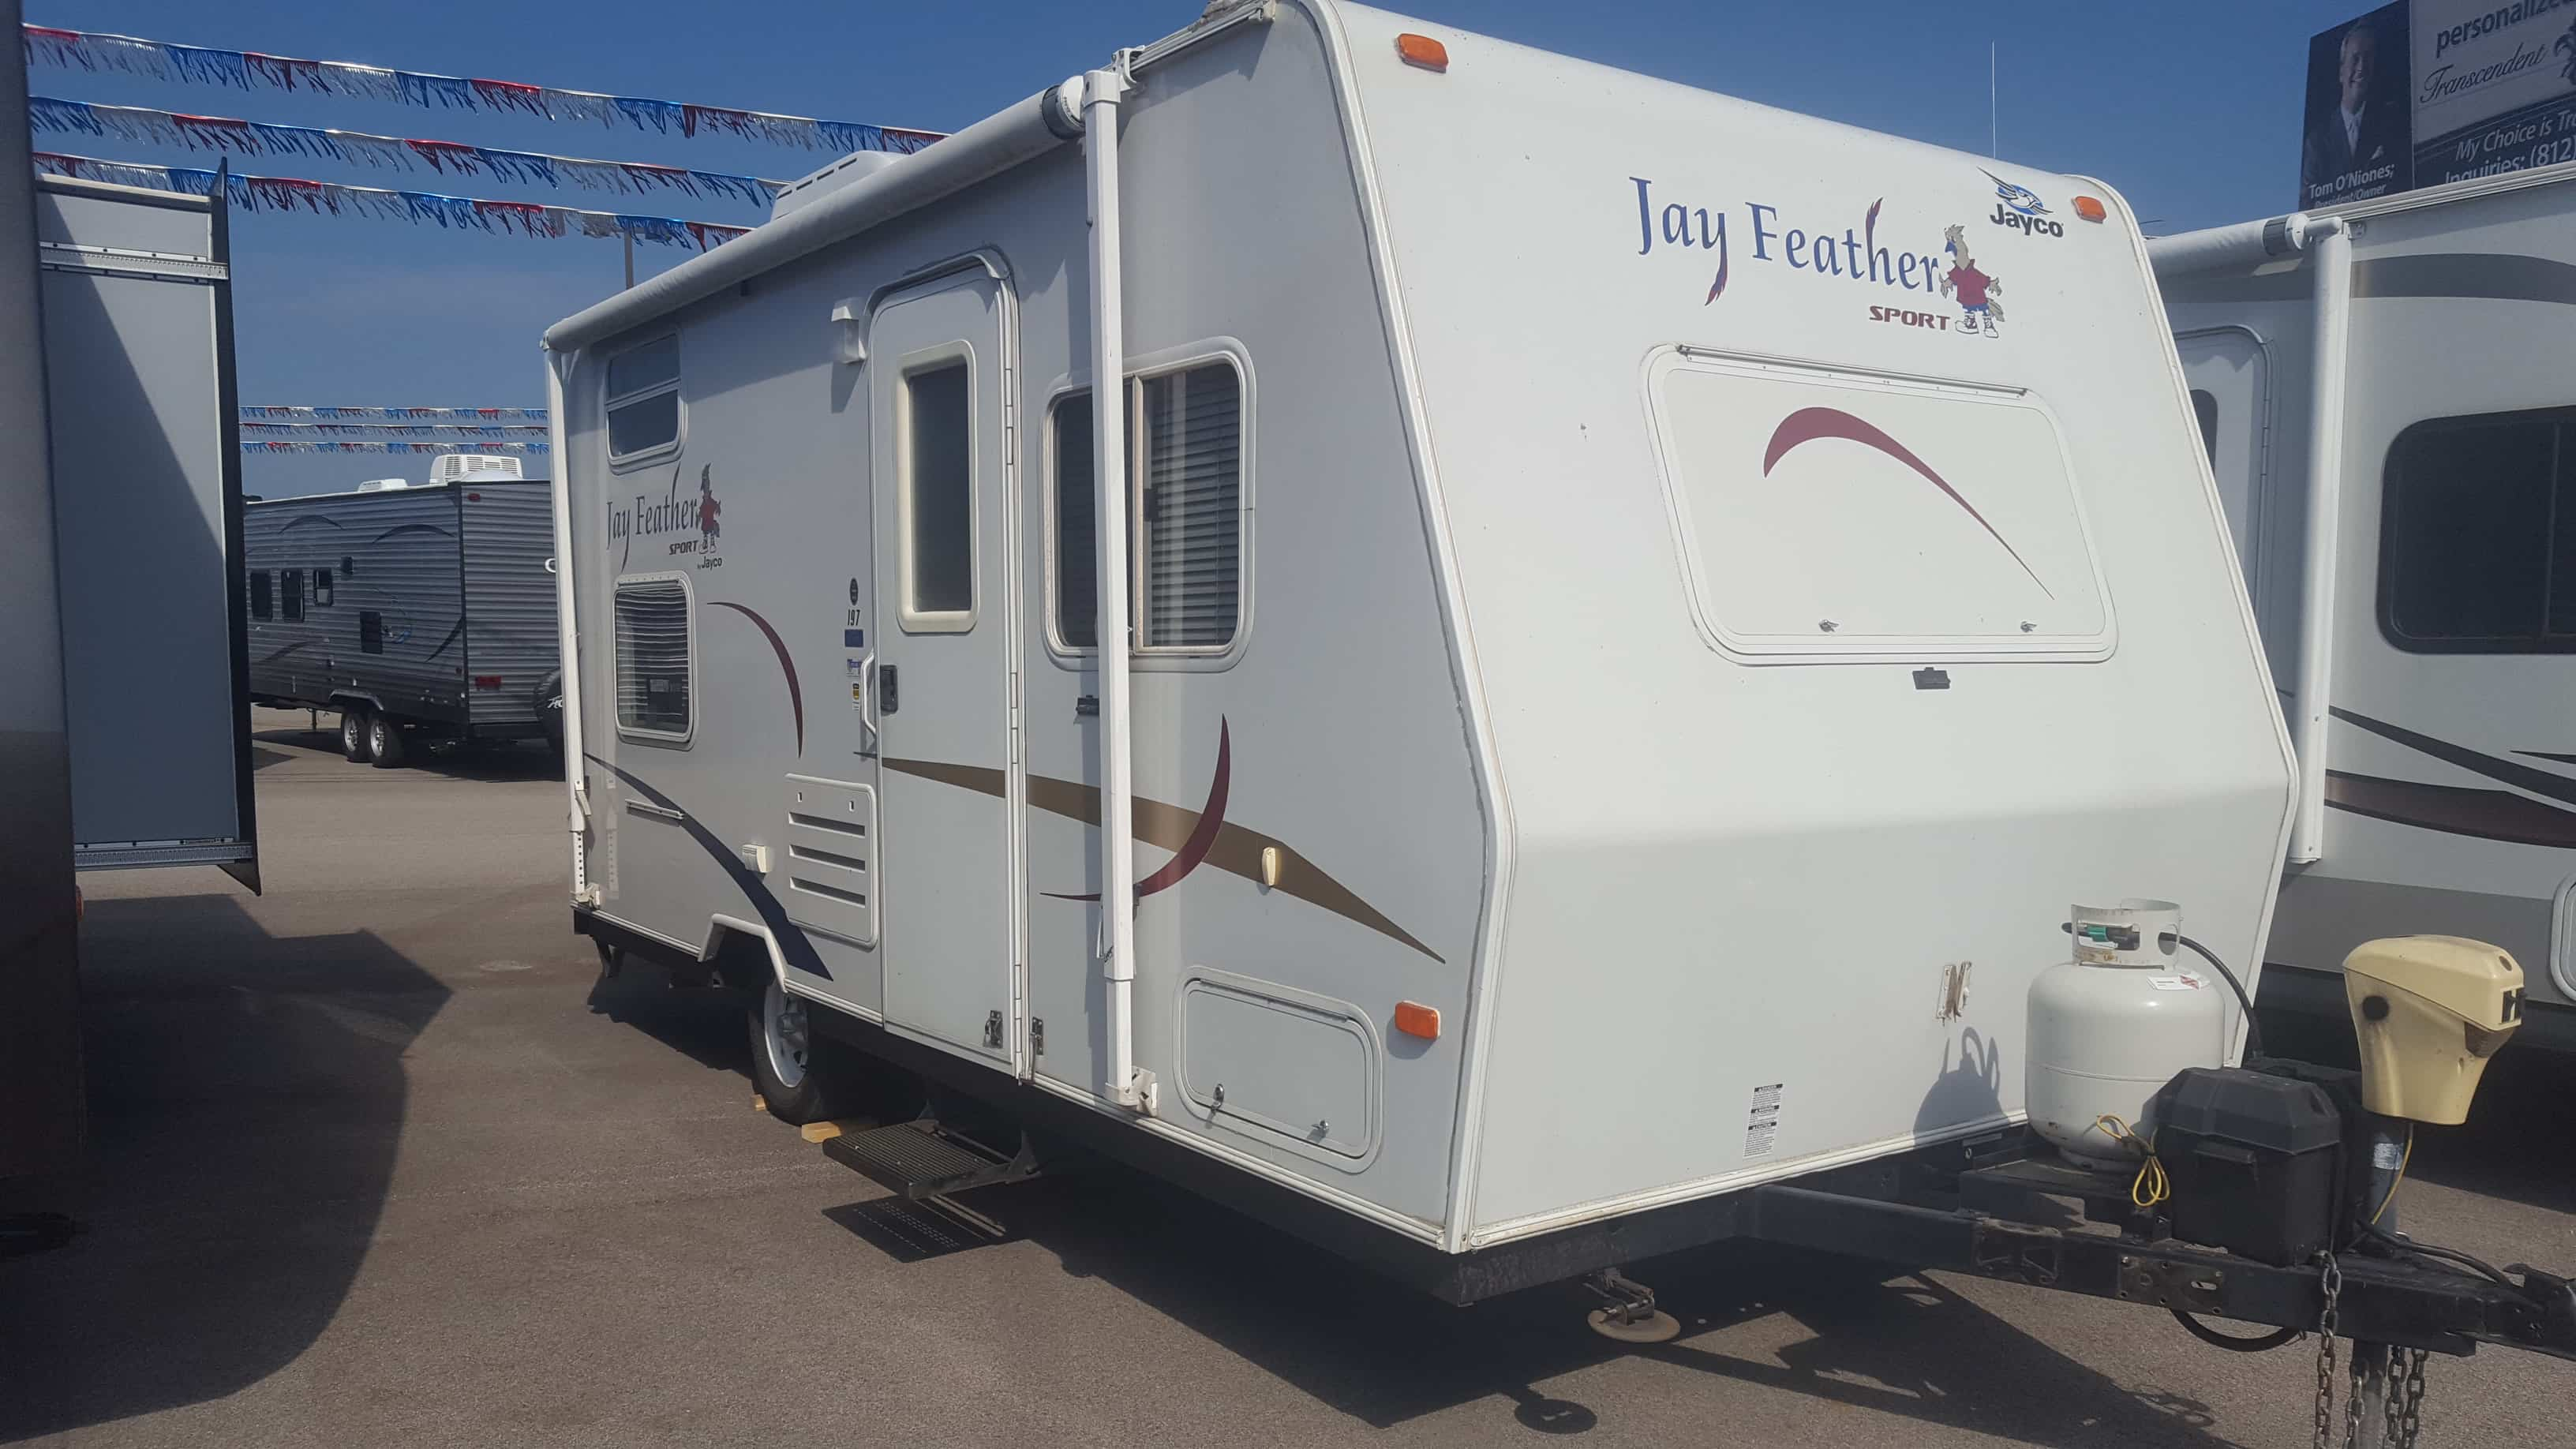 USED 2006 Jayco JAY FEATHER 197 - American RV